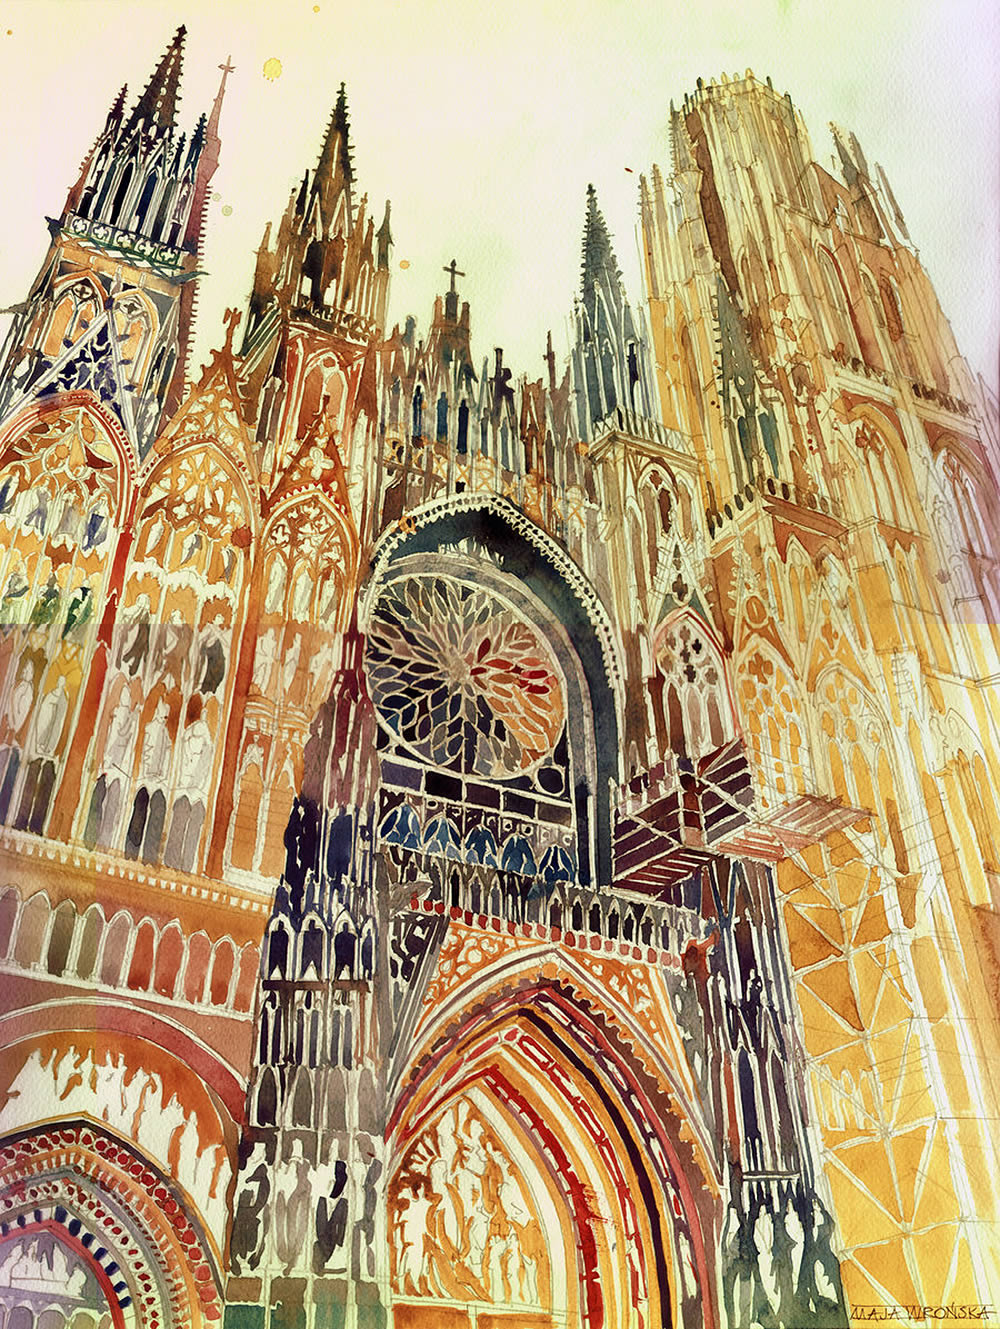 front side of cathedral watercolor painting by Maja Wronska